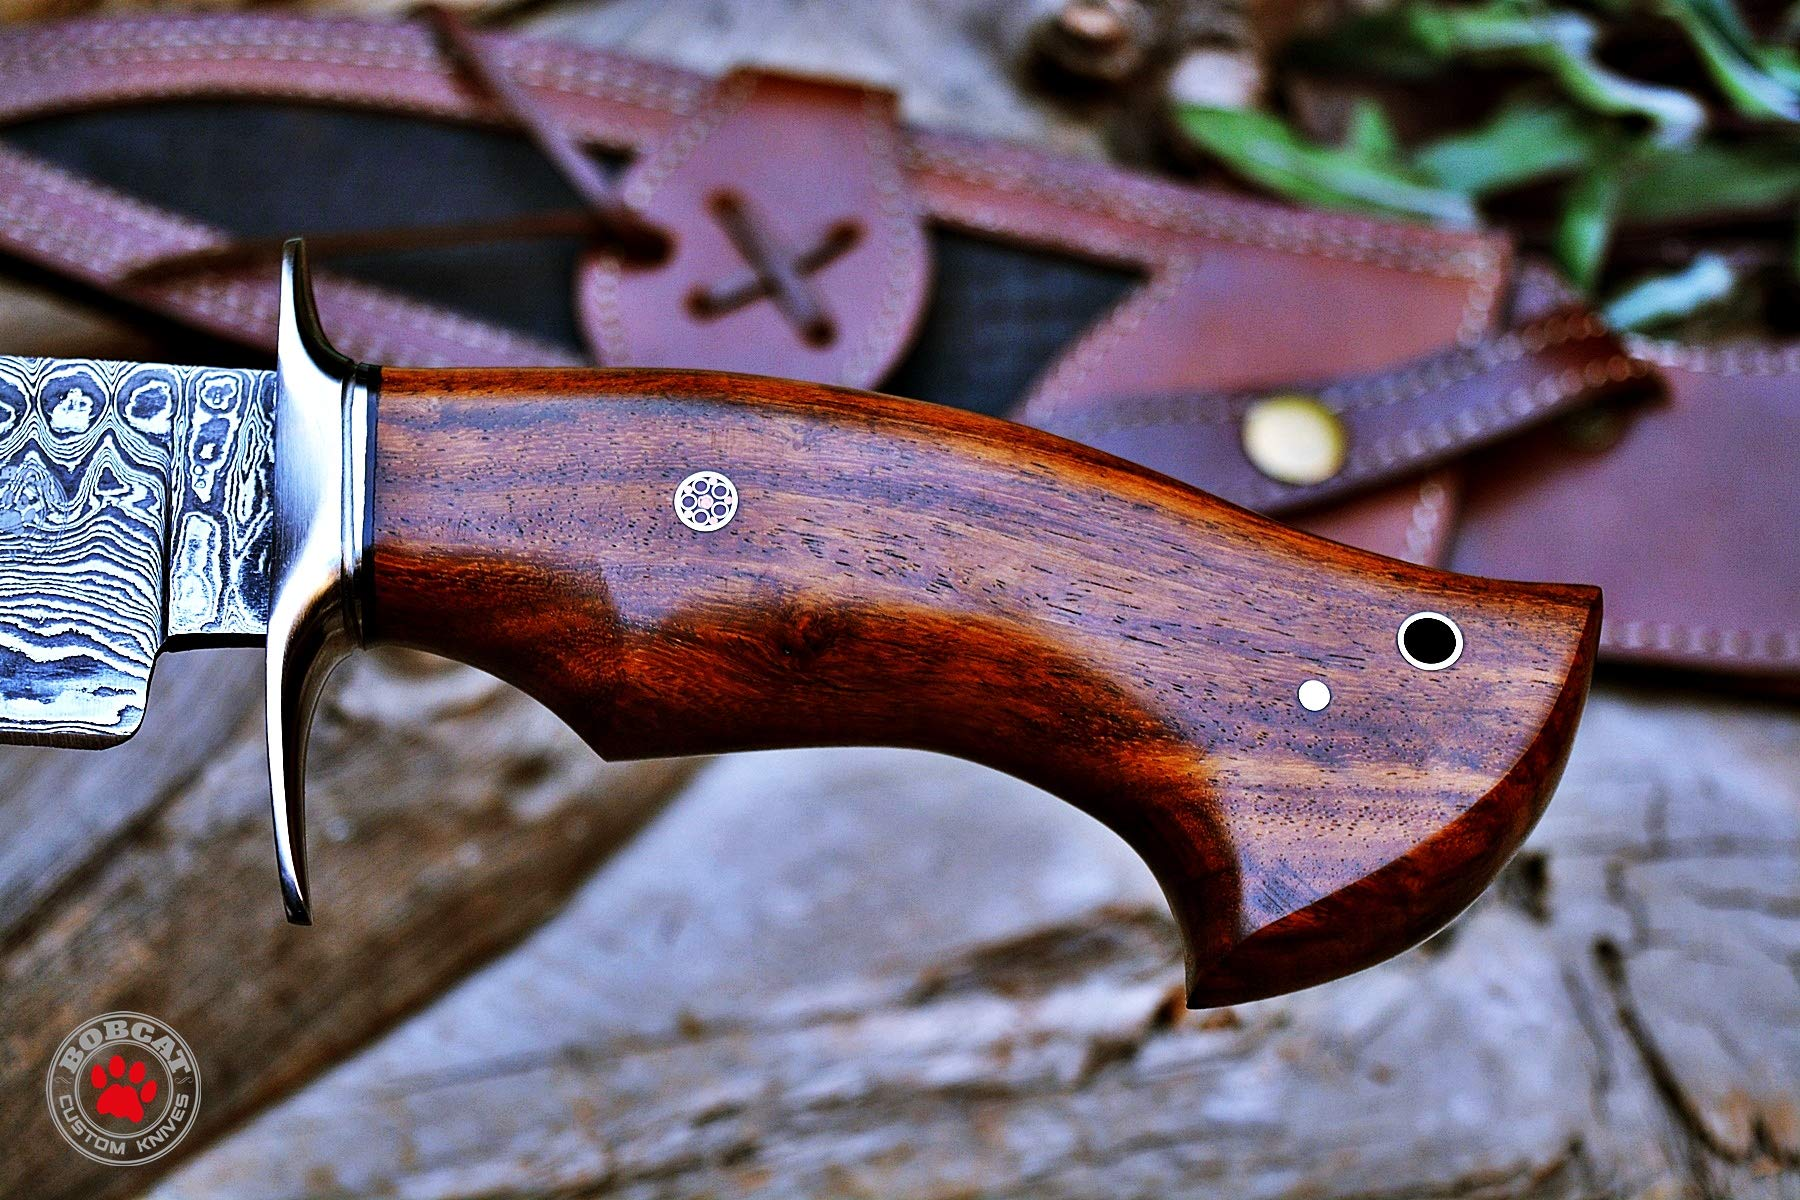 Custom Handmade Bowie Knife Hunting Knife Promotional Price Full Tang Damascus Steel 10'' Solid Walnut Wood Handle with Nice Sheath by Bobcat Knives (Image #5)